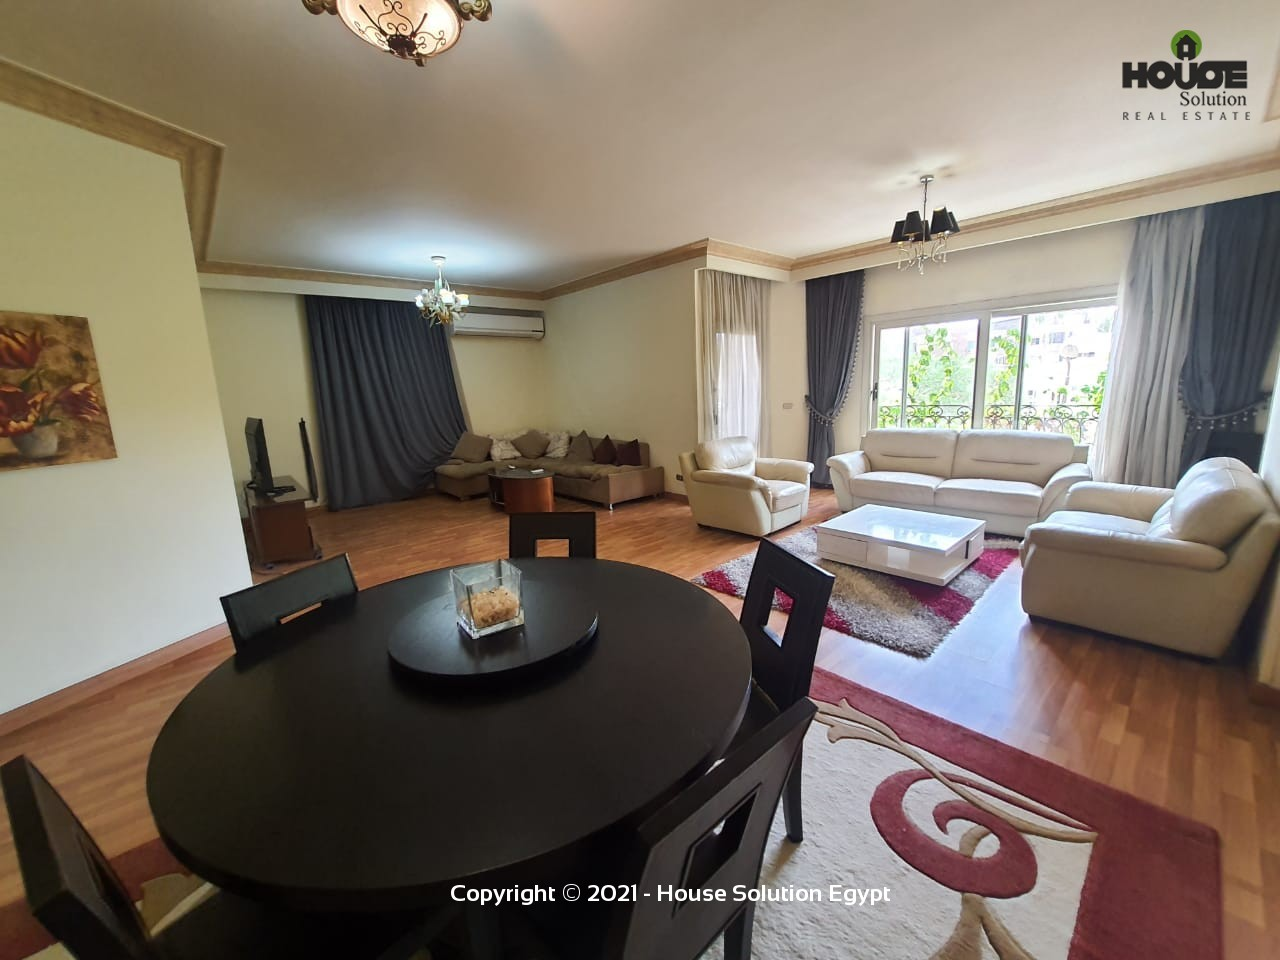 Affordable One Of A Kind 3 Bedroom Apartment For Rent In Degla El Maadi Cairo - 4947 Featured Image